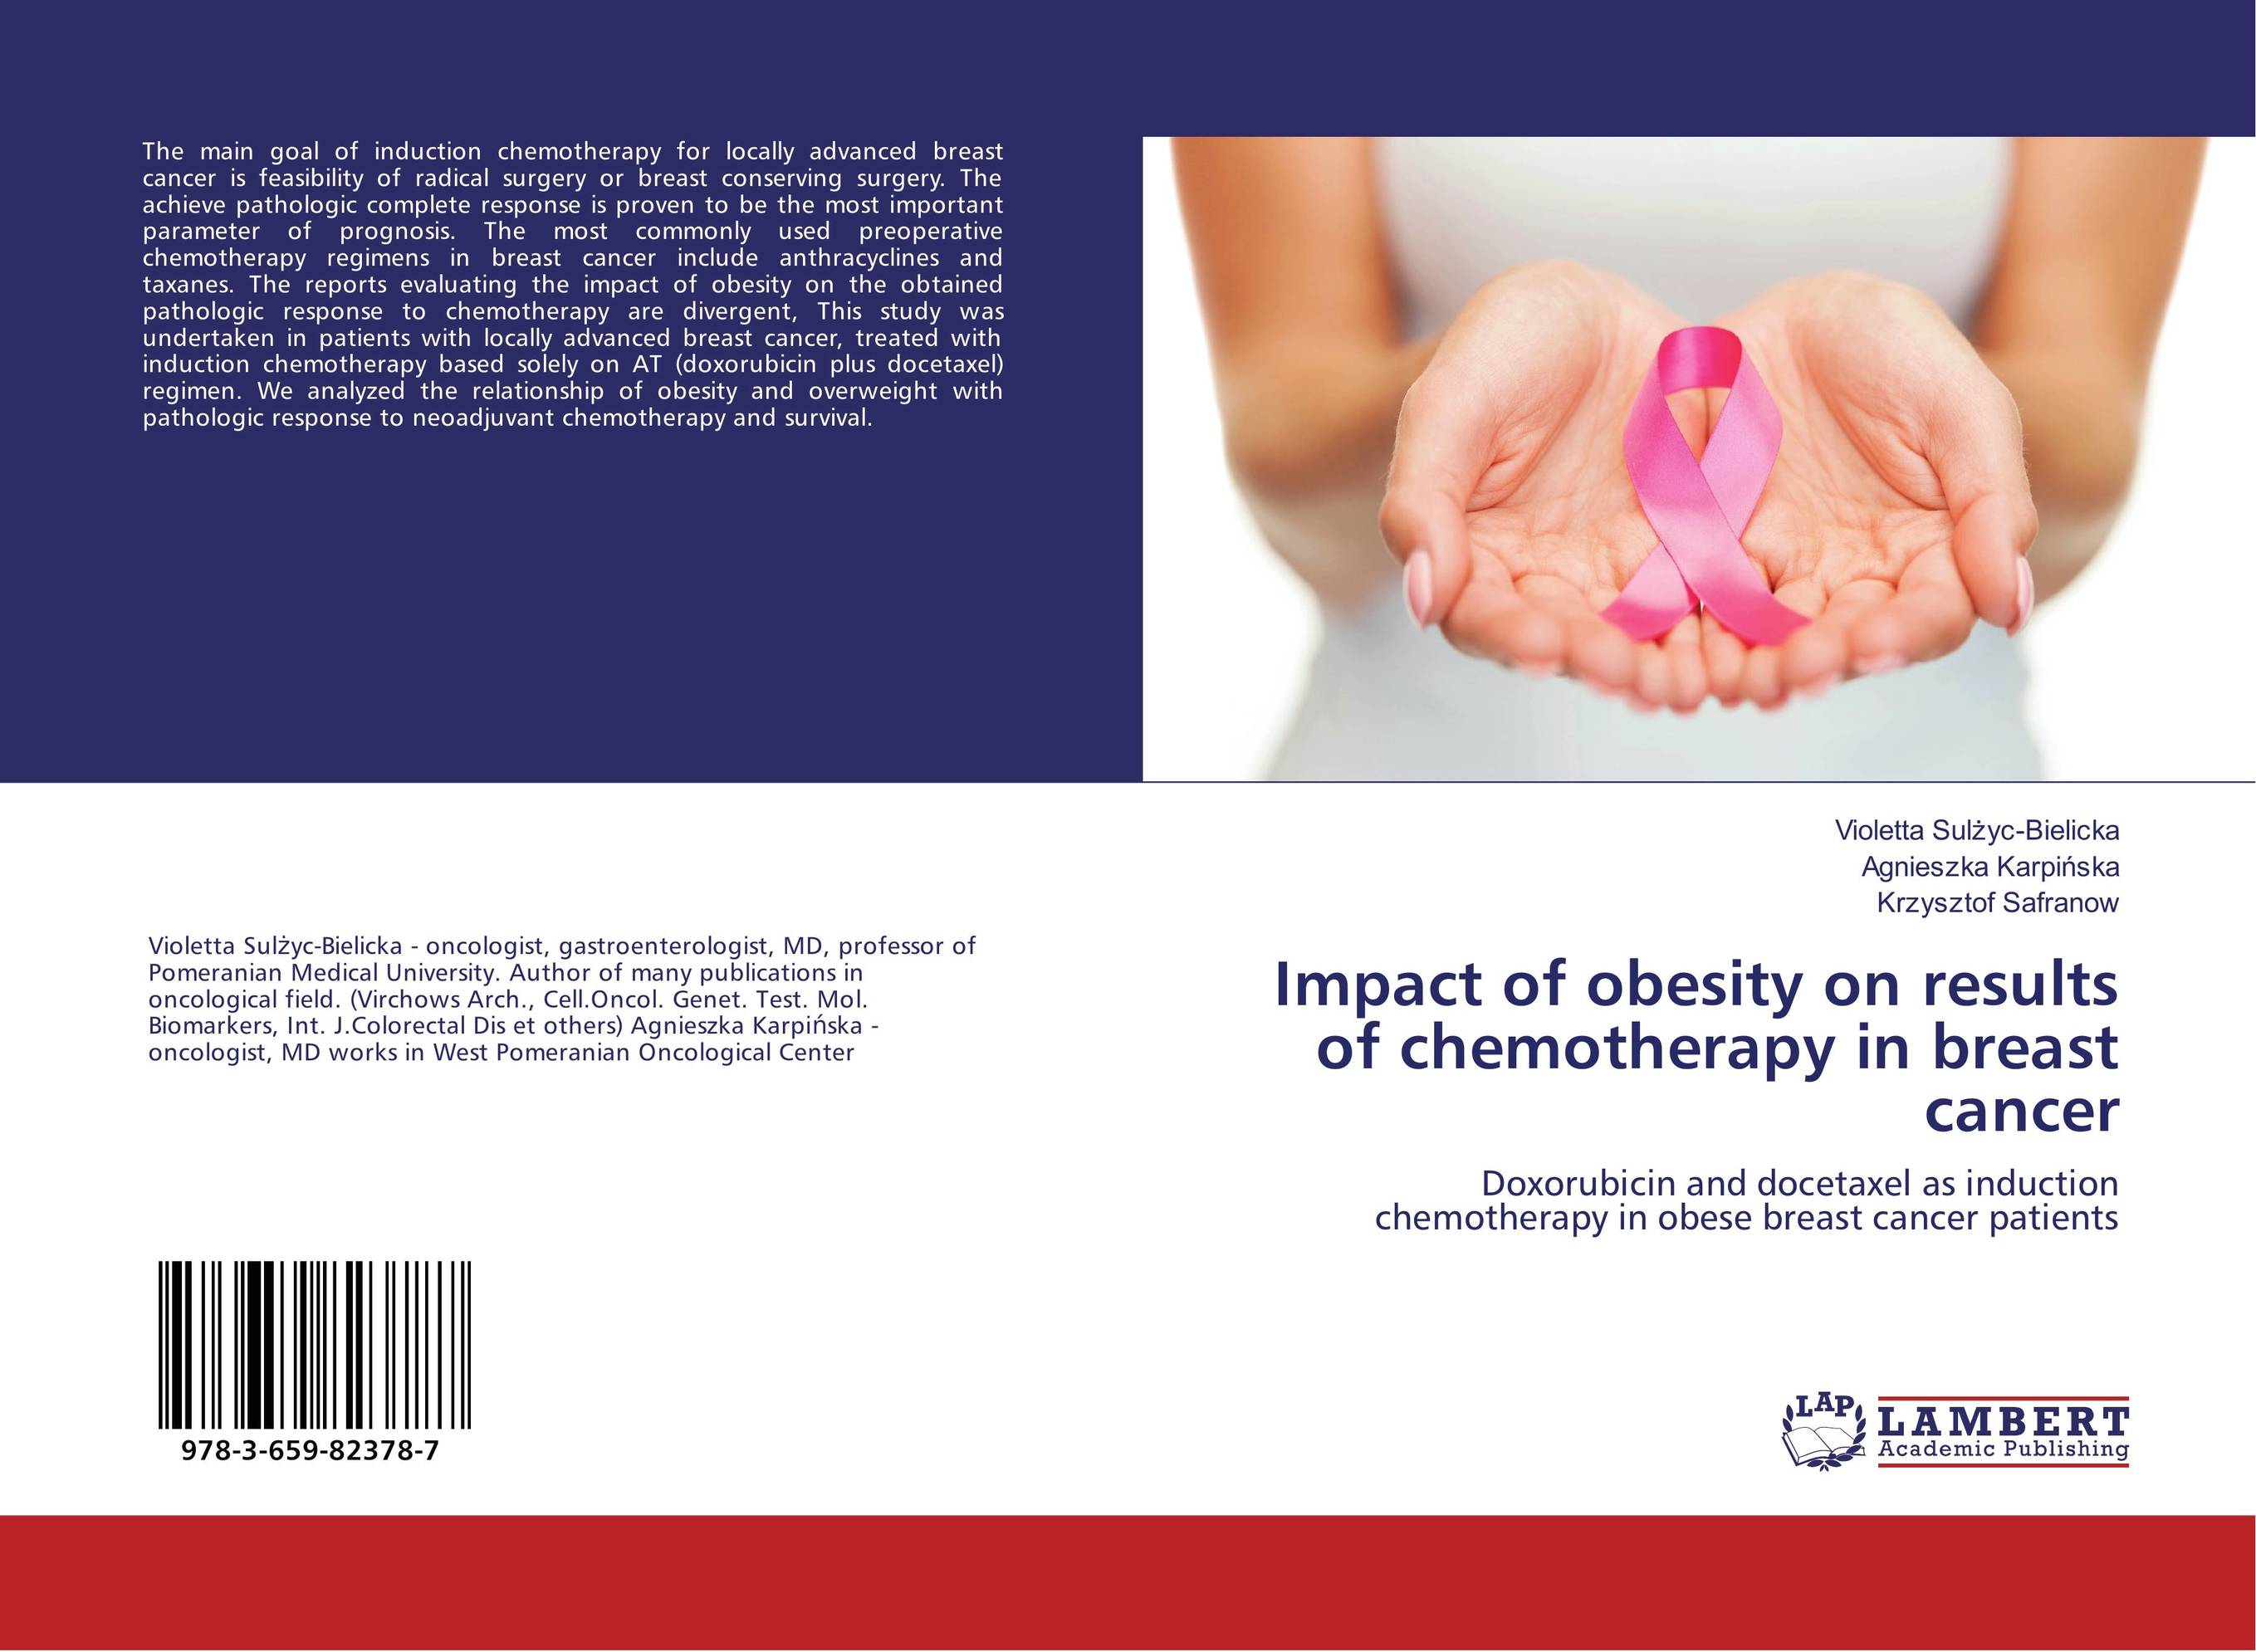 impact of walking on excess adiposity in obese adults Excess weight and adiposity were associated with worse walking endurance in nondisabled persons aged 60–79 years and predicted accelerated decline in endurance in late mid-life adults weight management for mobility independence may be best targeted in obese.